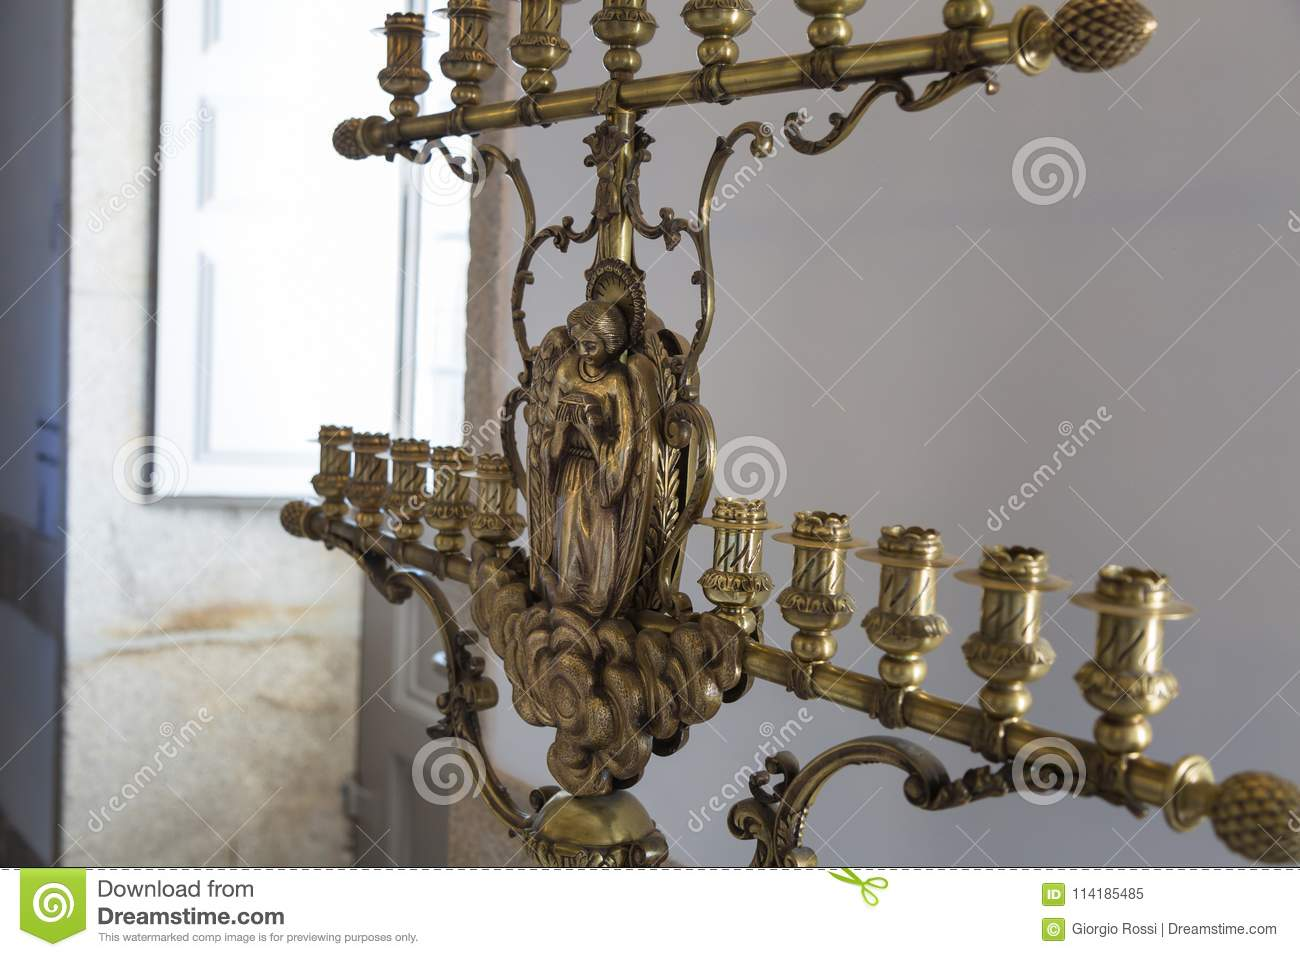 Close up of Old Golden Candlestick with Religious Decorations